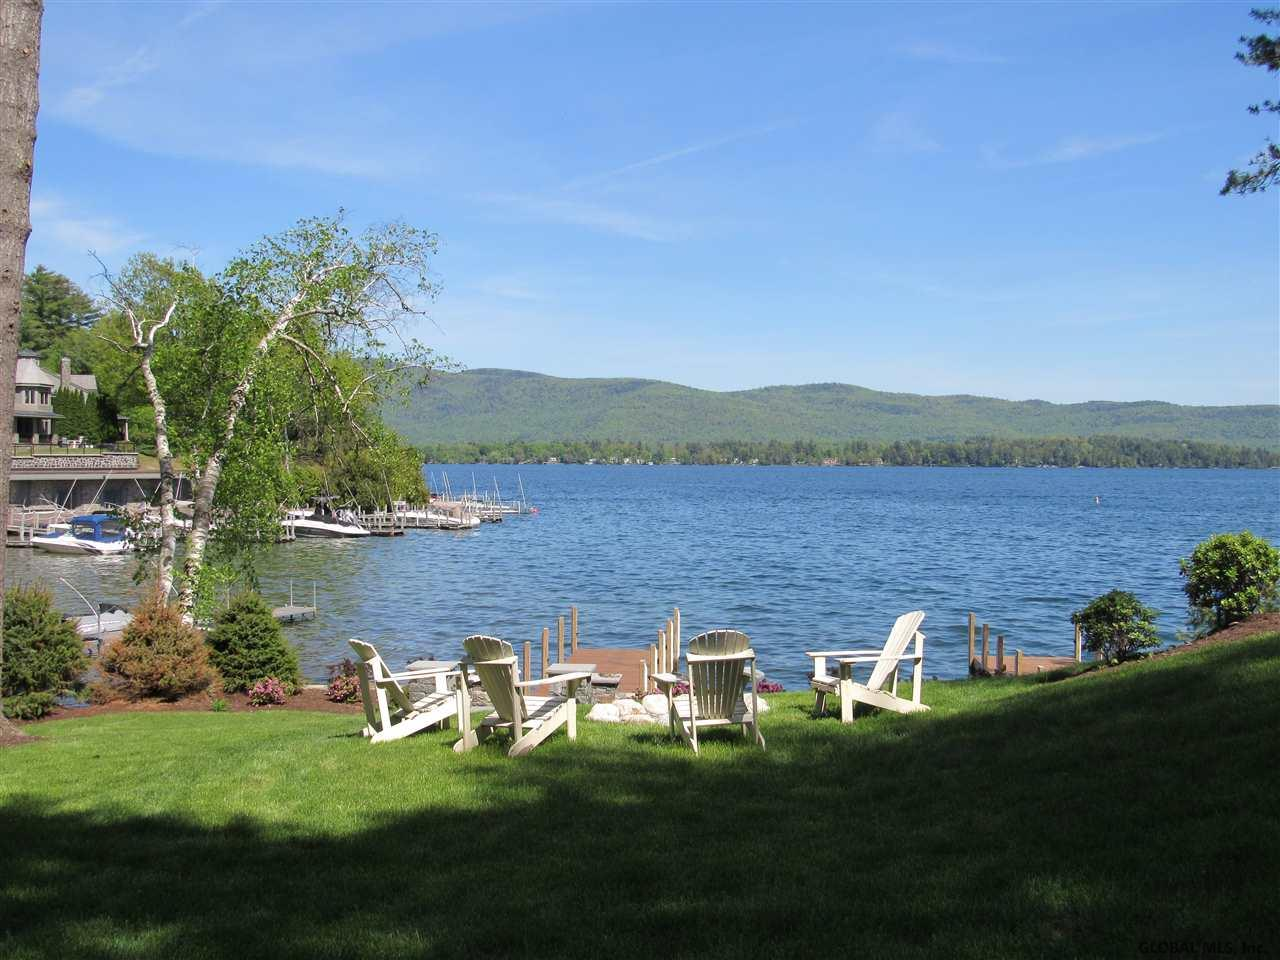 Lake George image 58